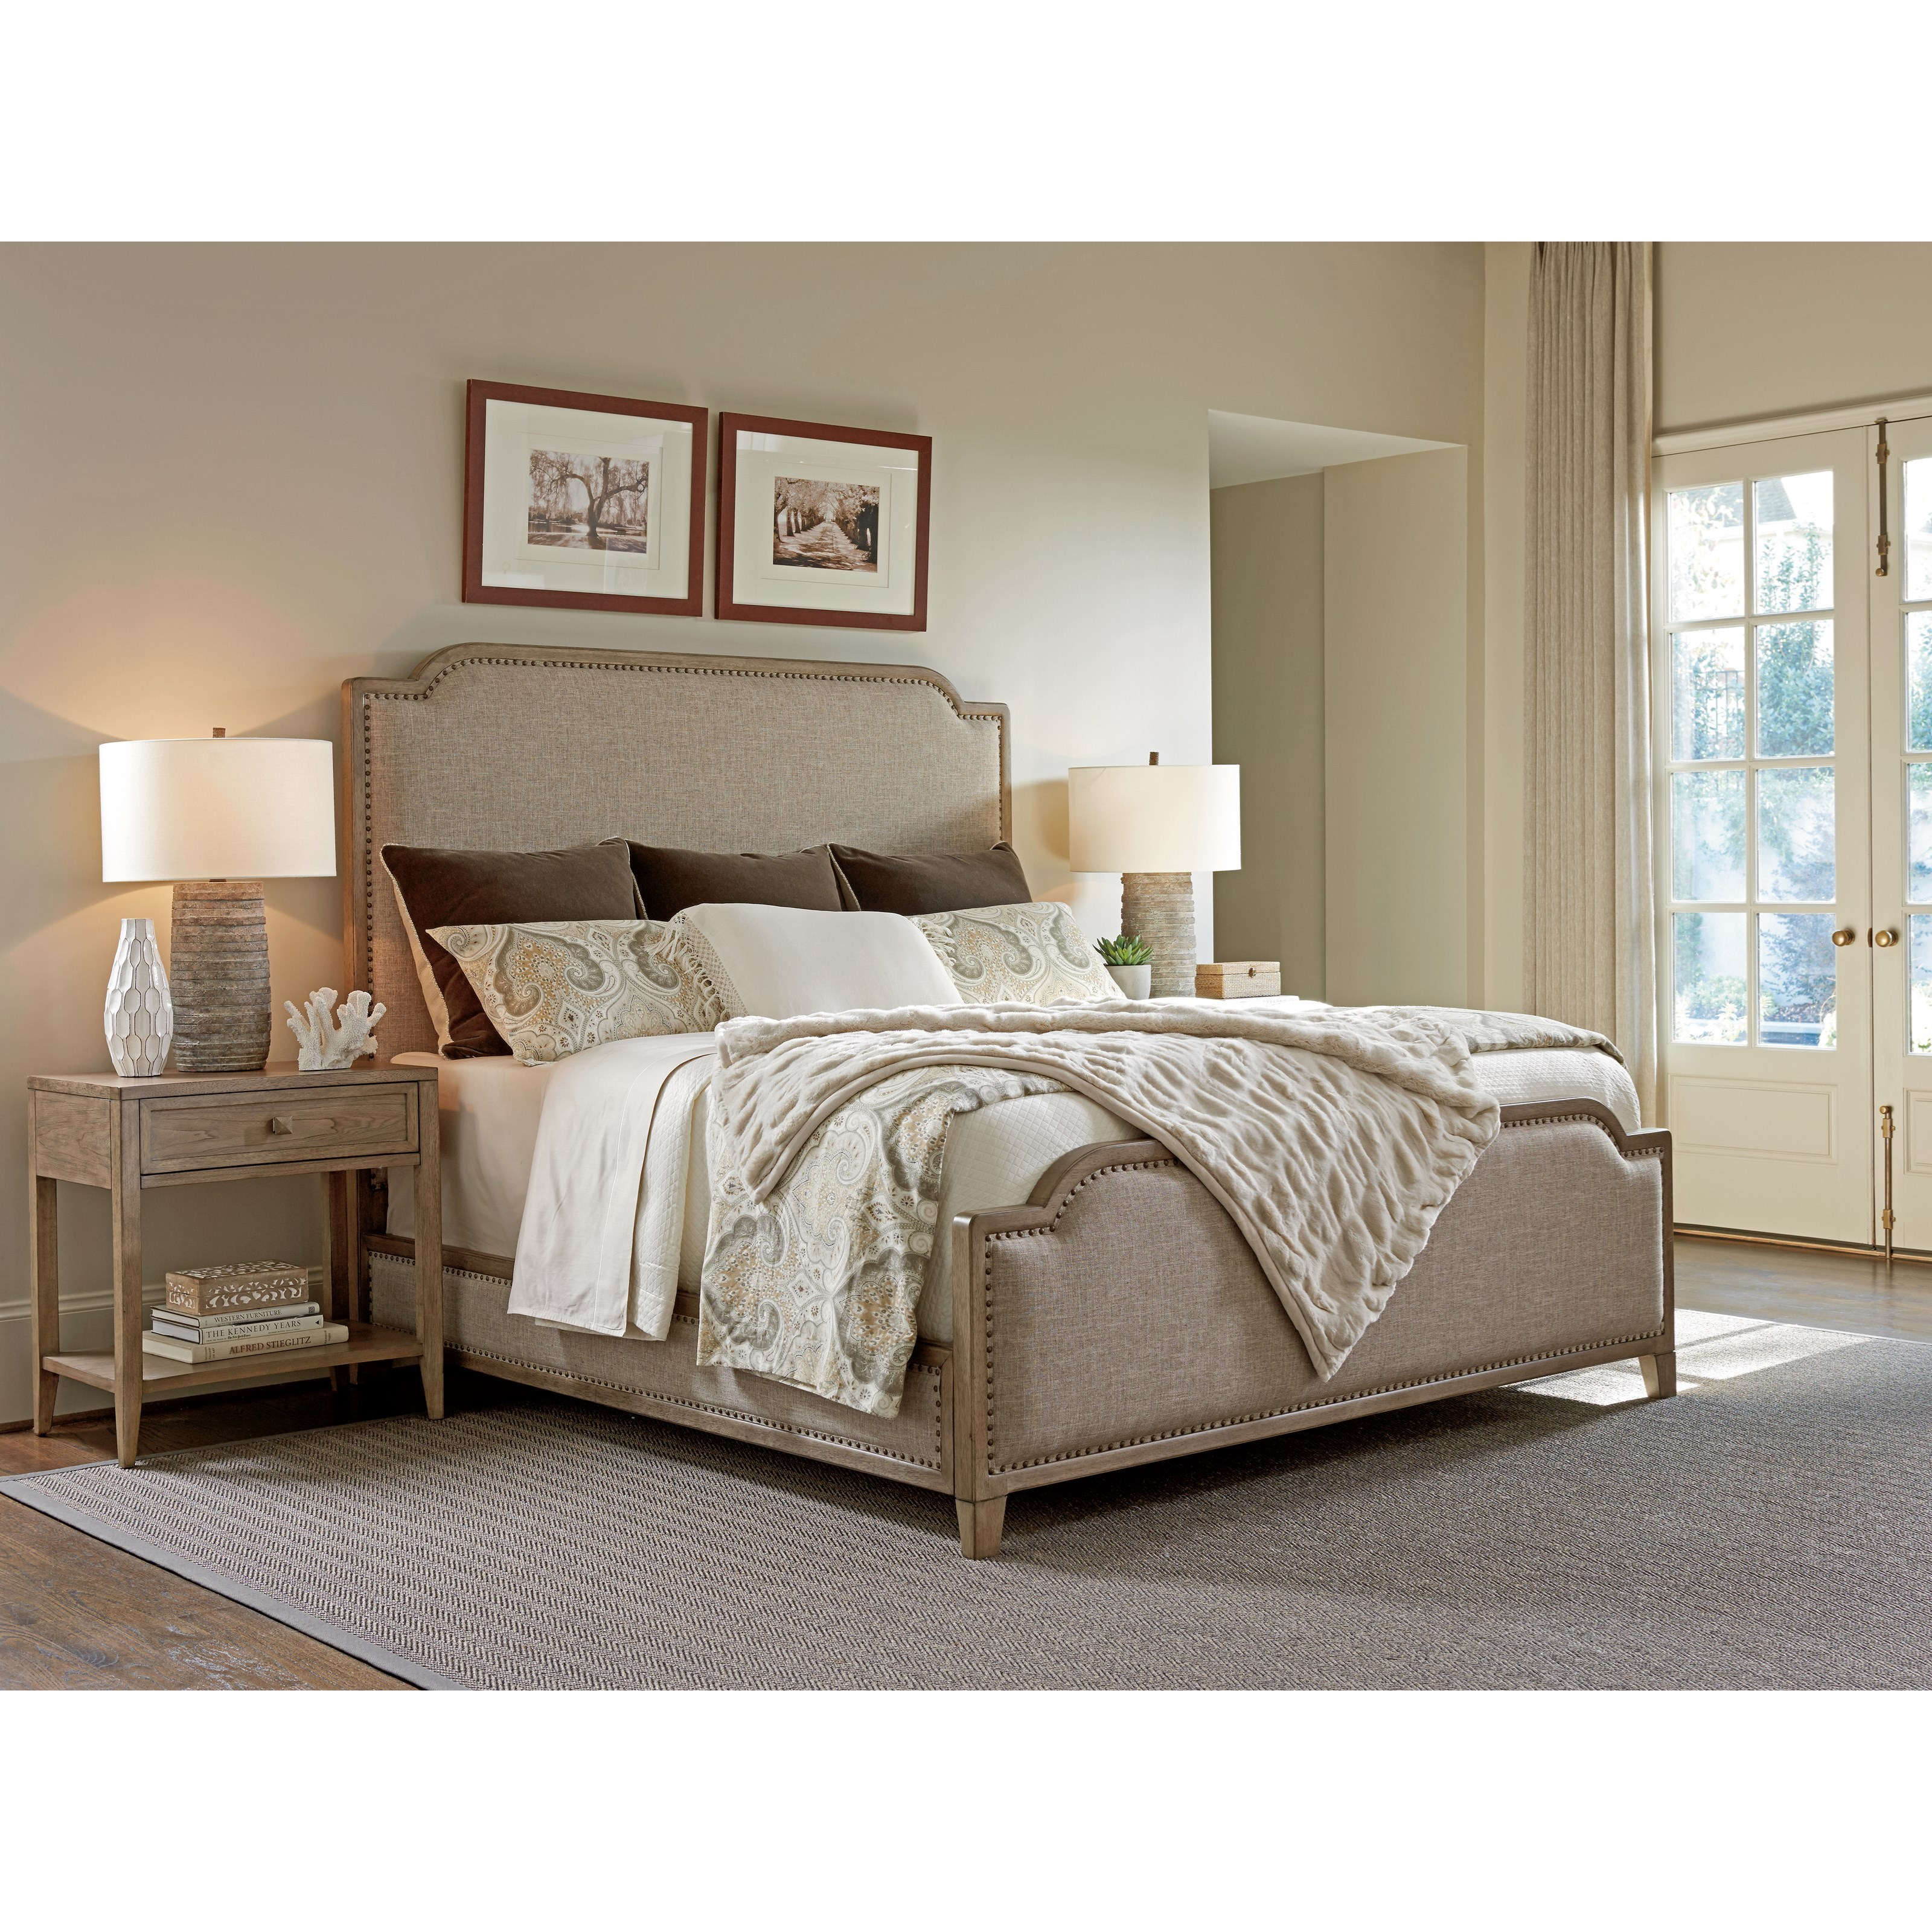 Tommy bahama home cypress point stone harbour queen size bed with fabric upholstery and nailhead Home furniture queen size bed